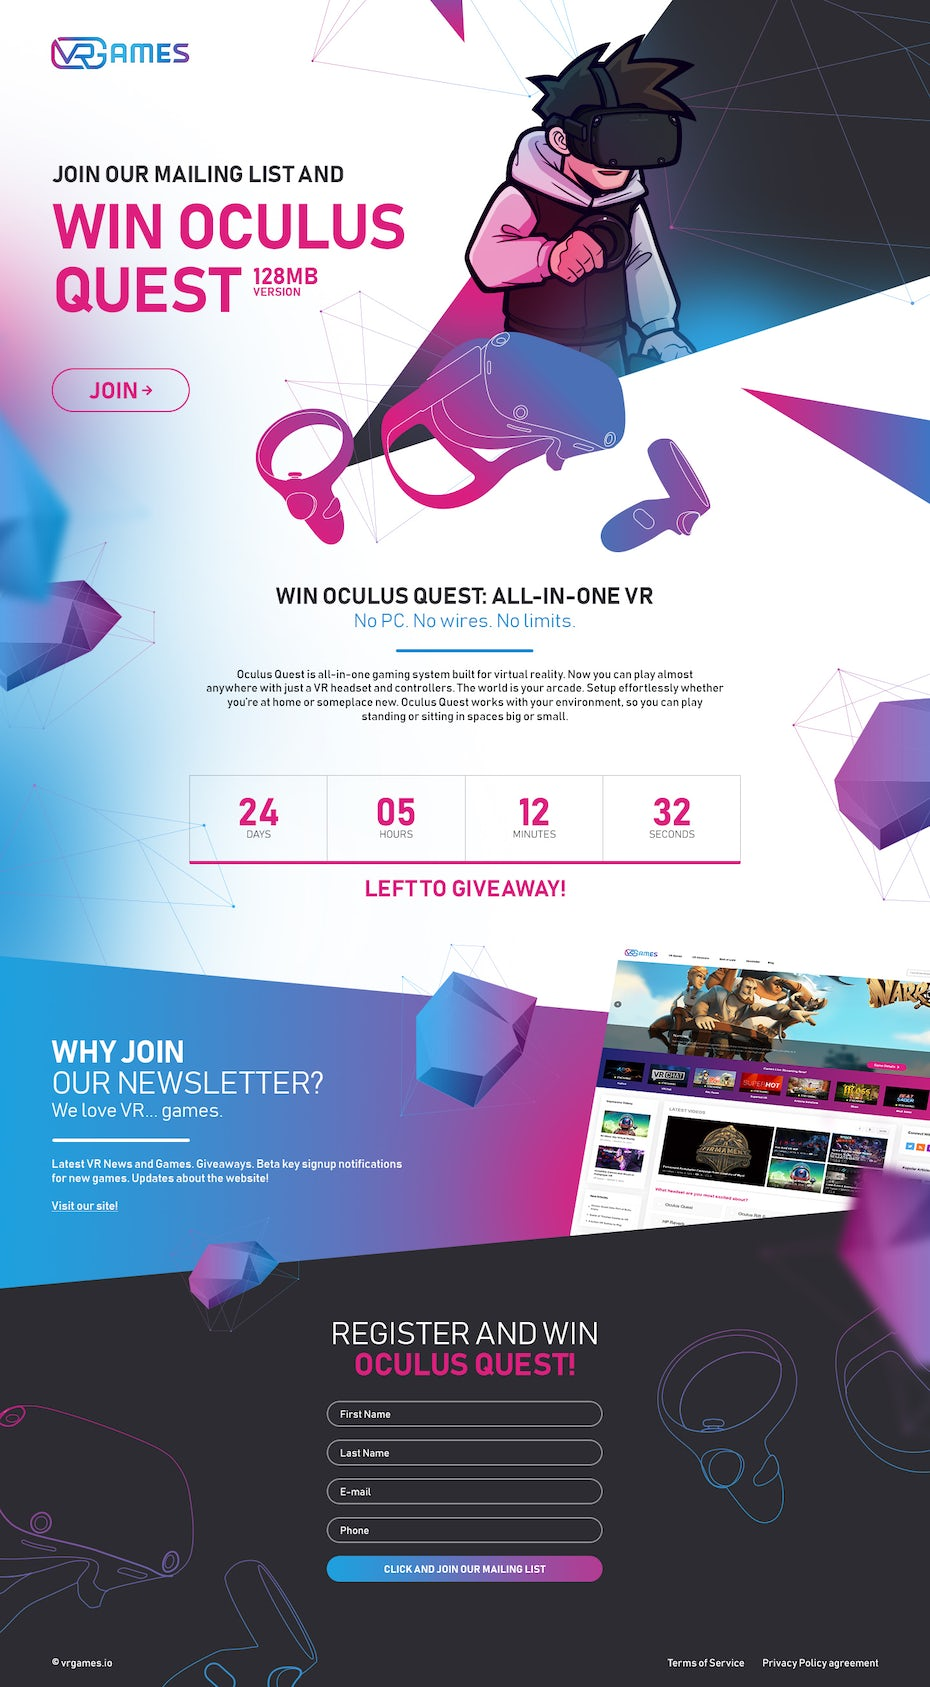 landing page showing vectors, neon blue and pink and a character wearing a VR headset